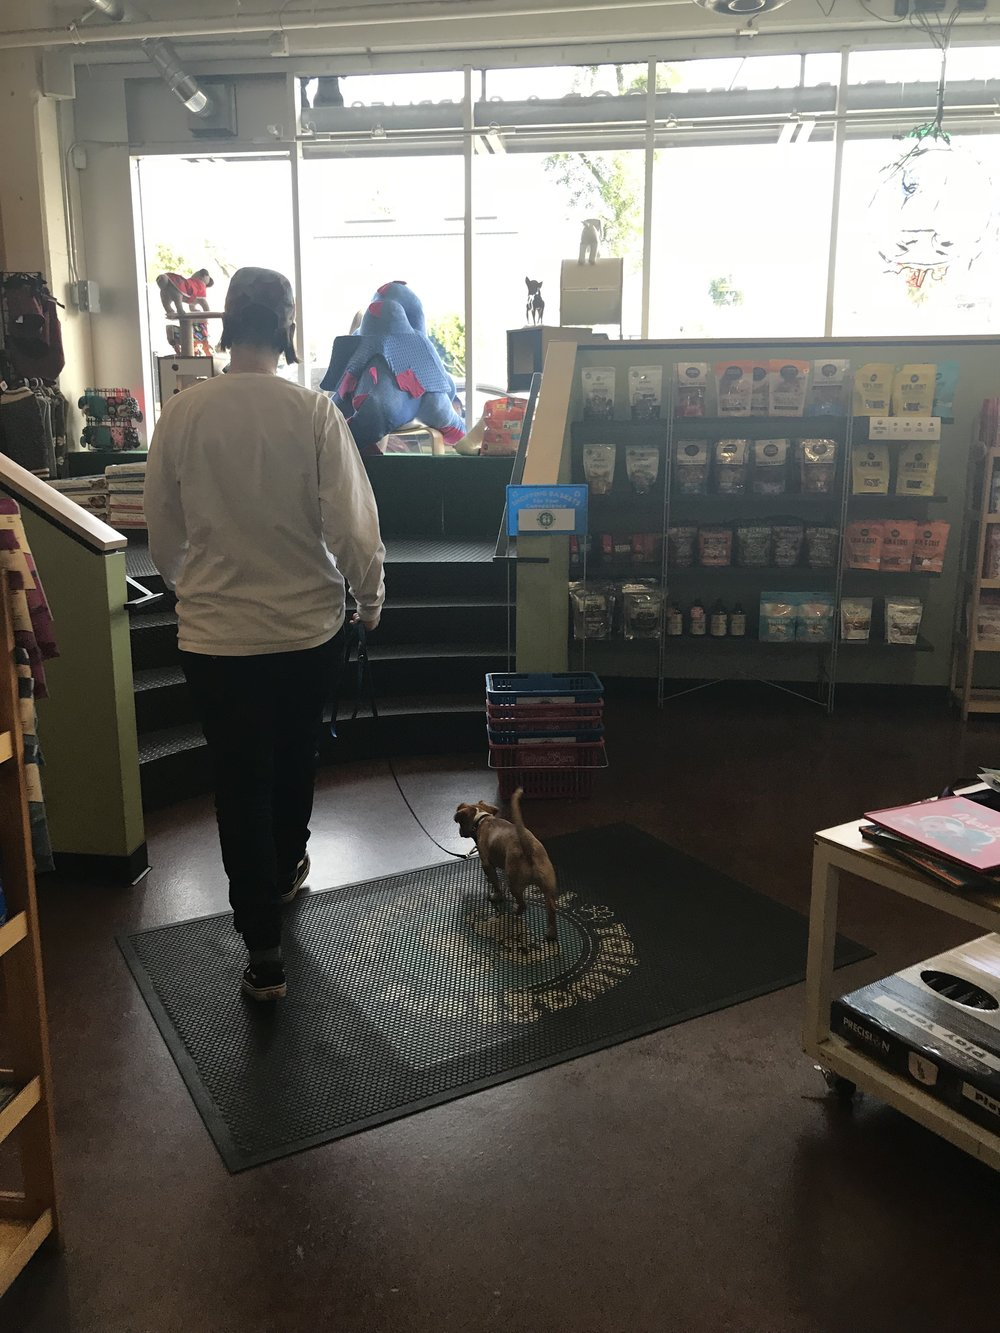 We love Tailwaggers! I love that it's a local business and it's also where we first met Bean, at an adoption event they were holding.